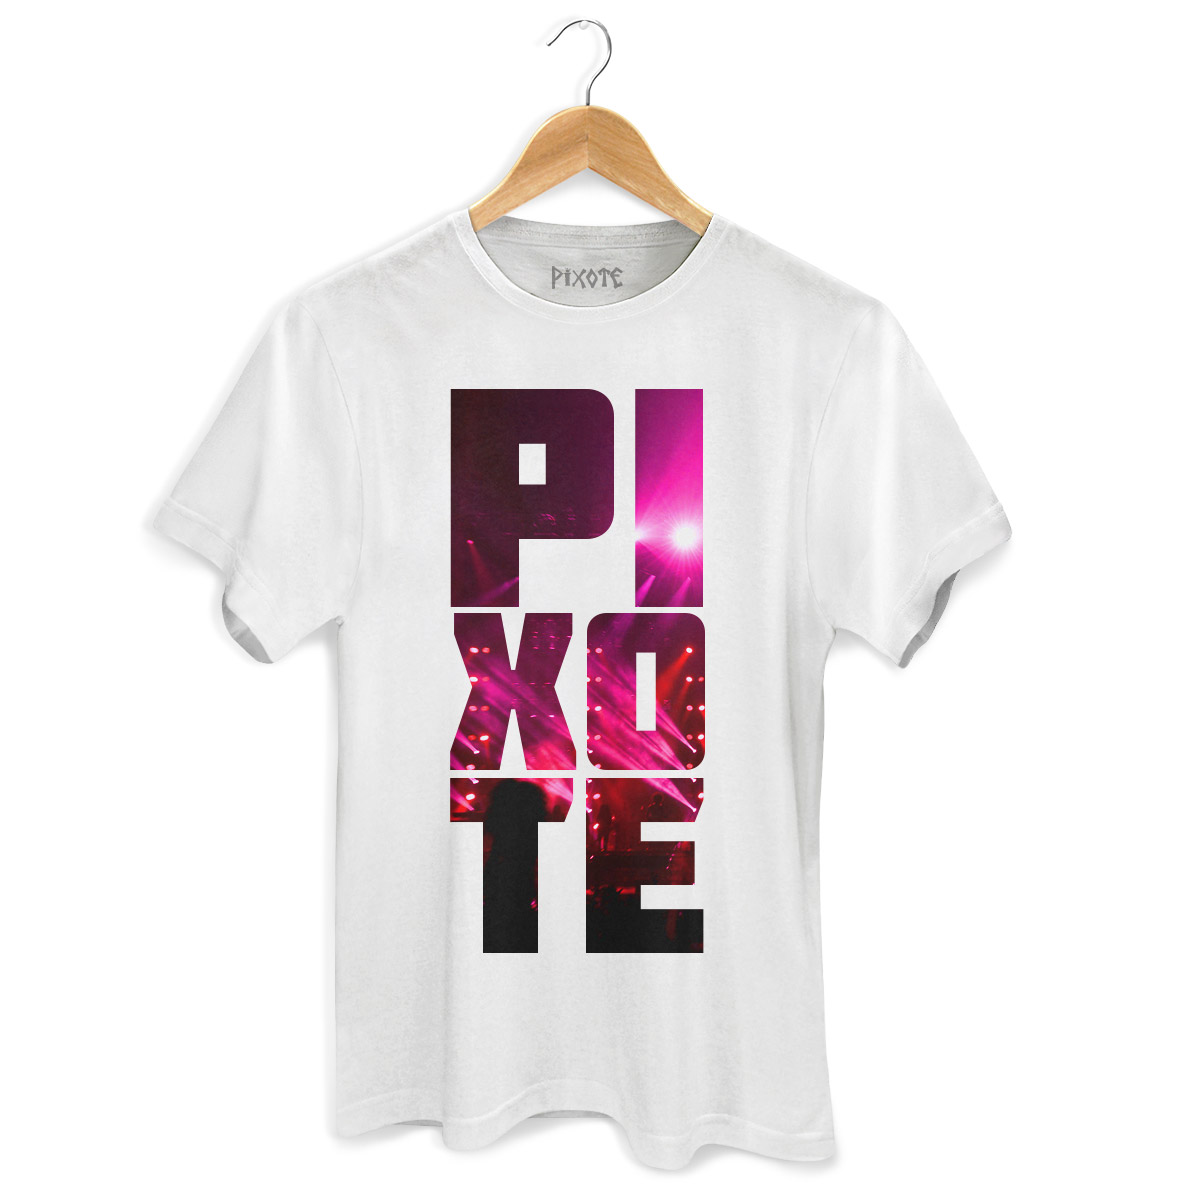 Camiseta Masculina Pixote Lights